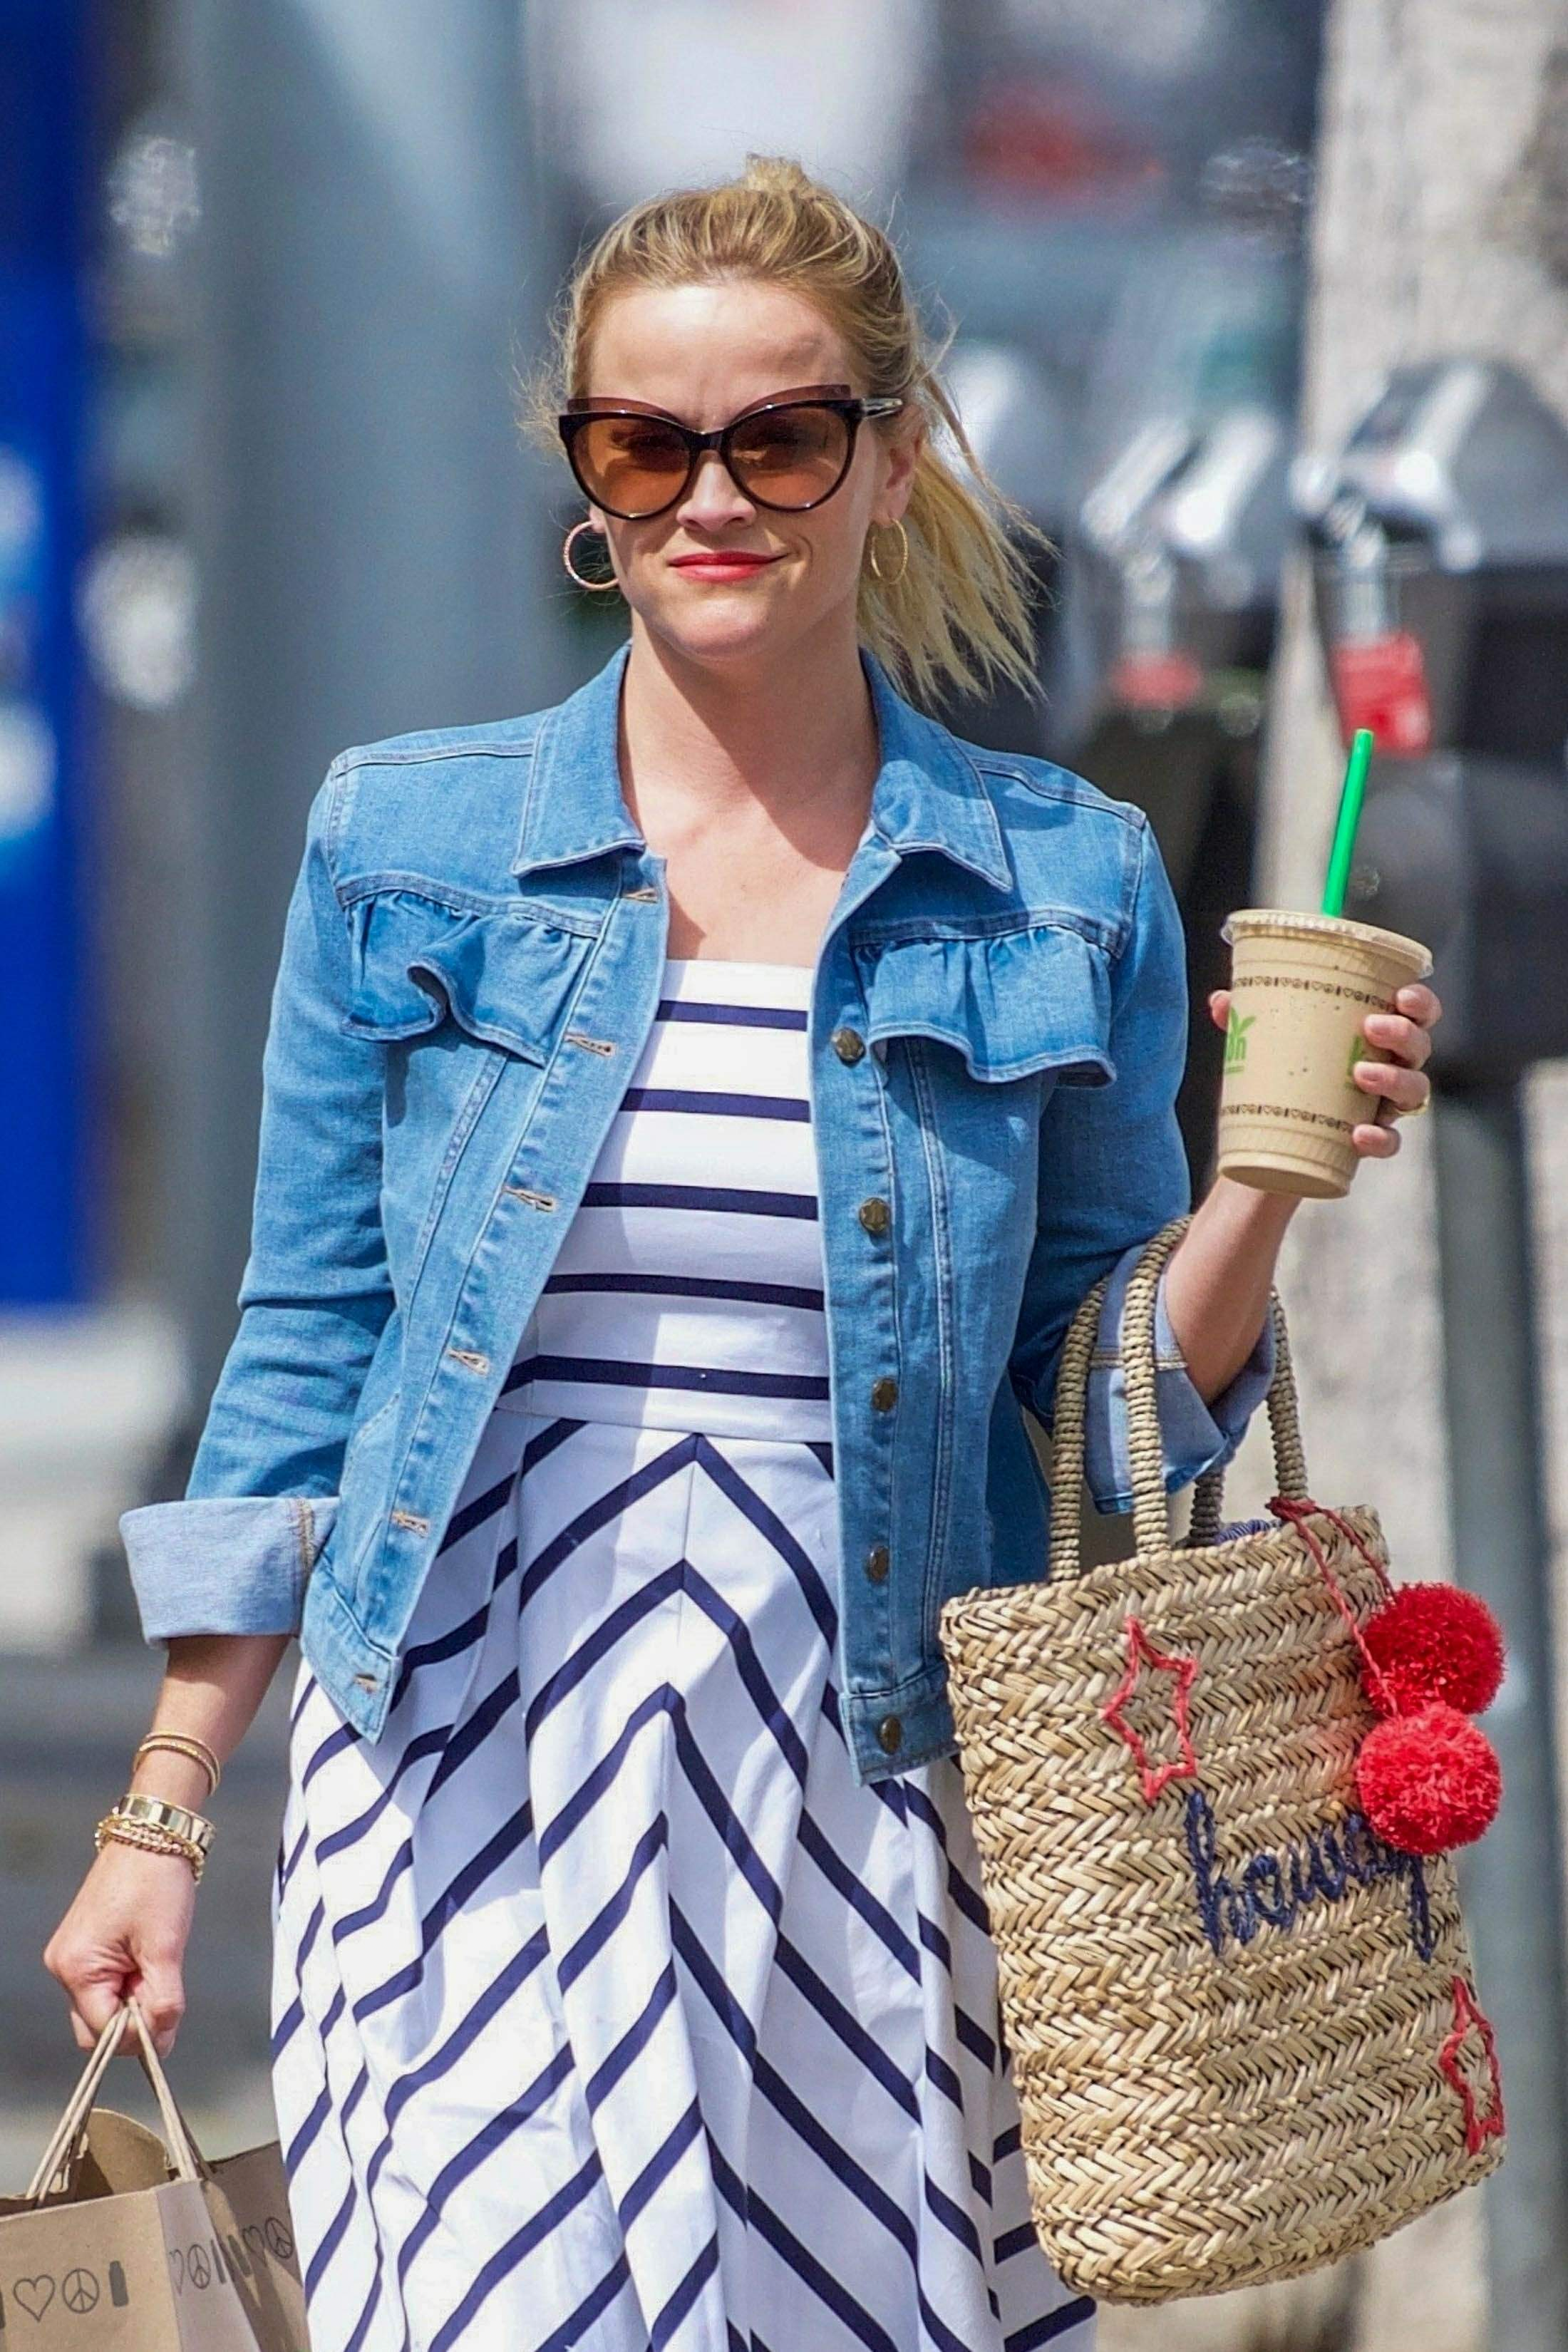 74542043 reese witherspoon 02072018 p 07